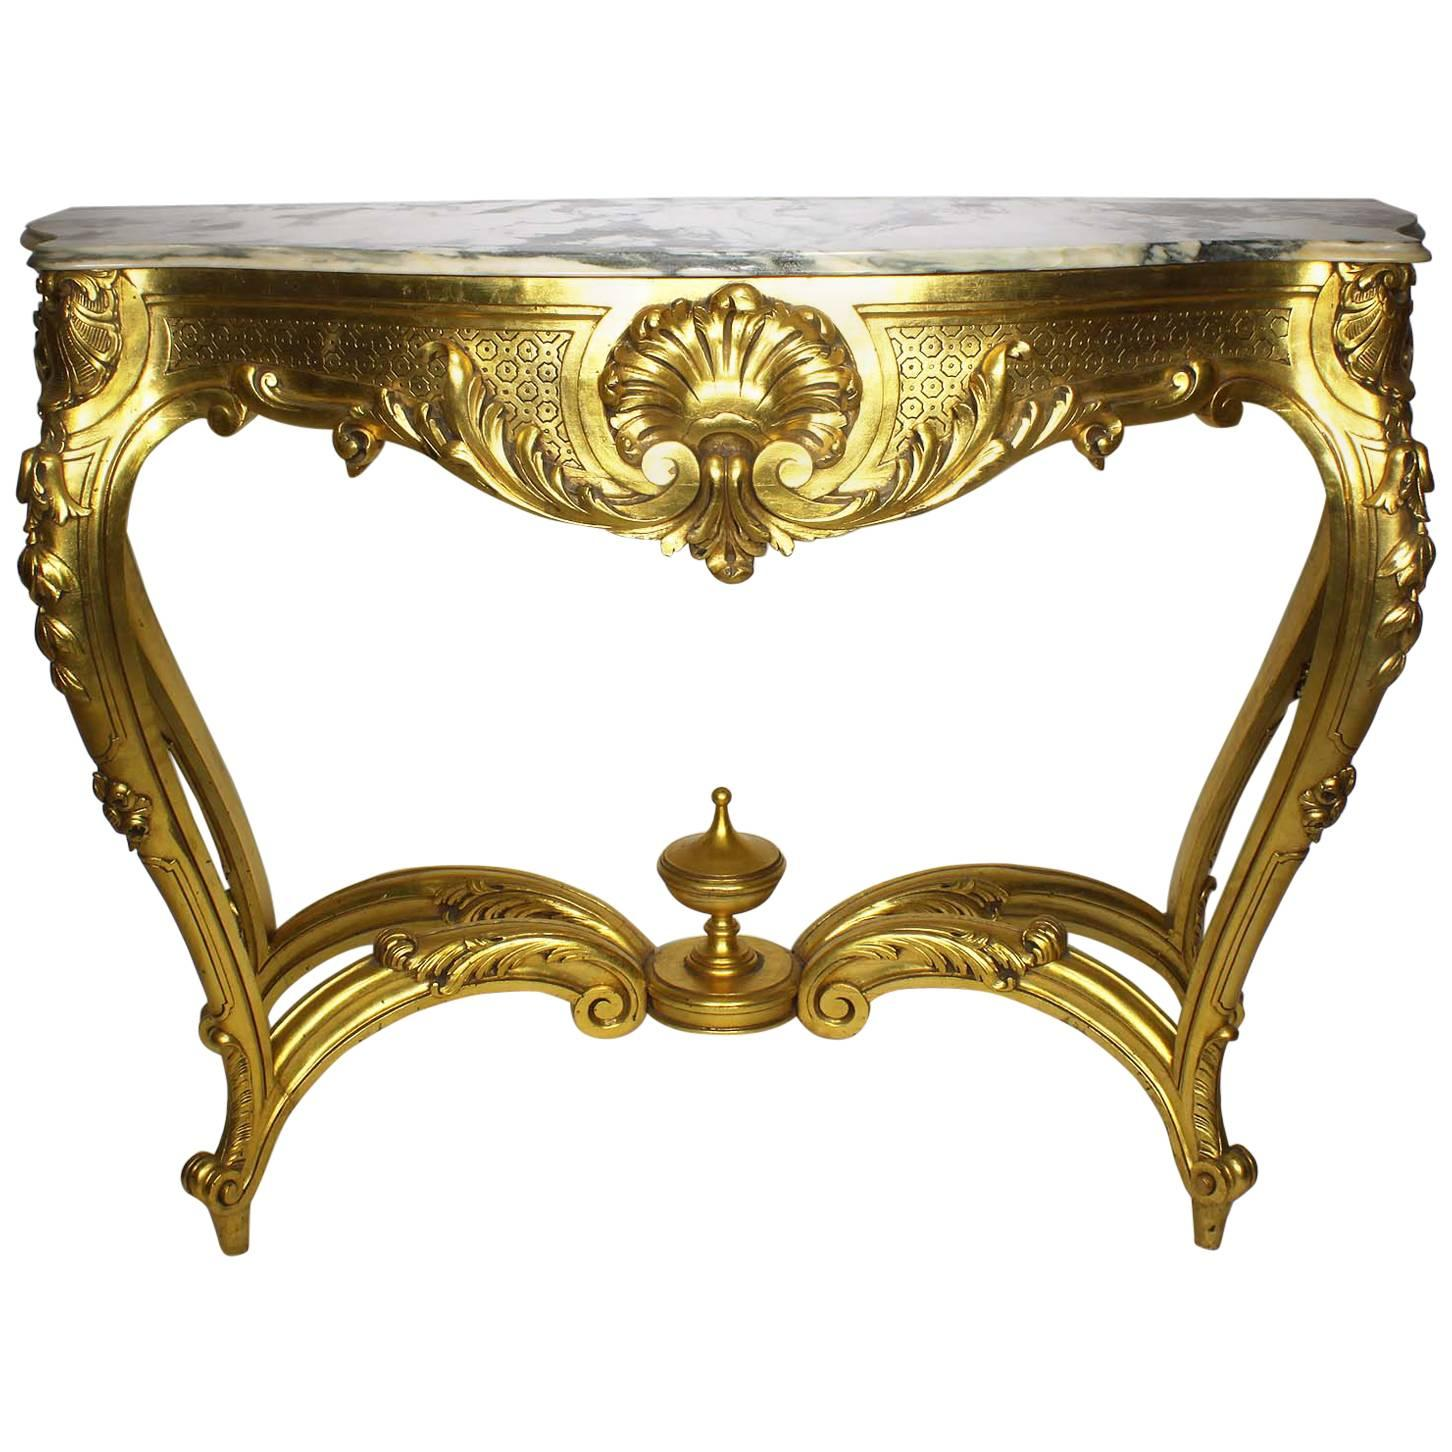 French Louis XV Style Giltwood Carved Console Table with Marble Top